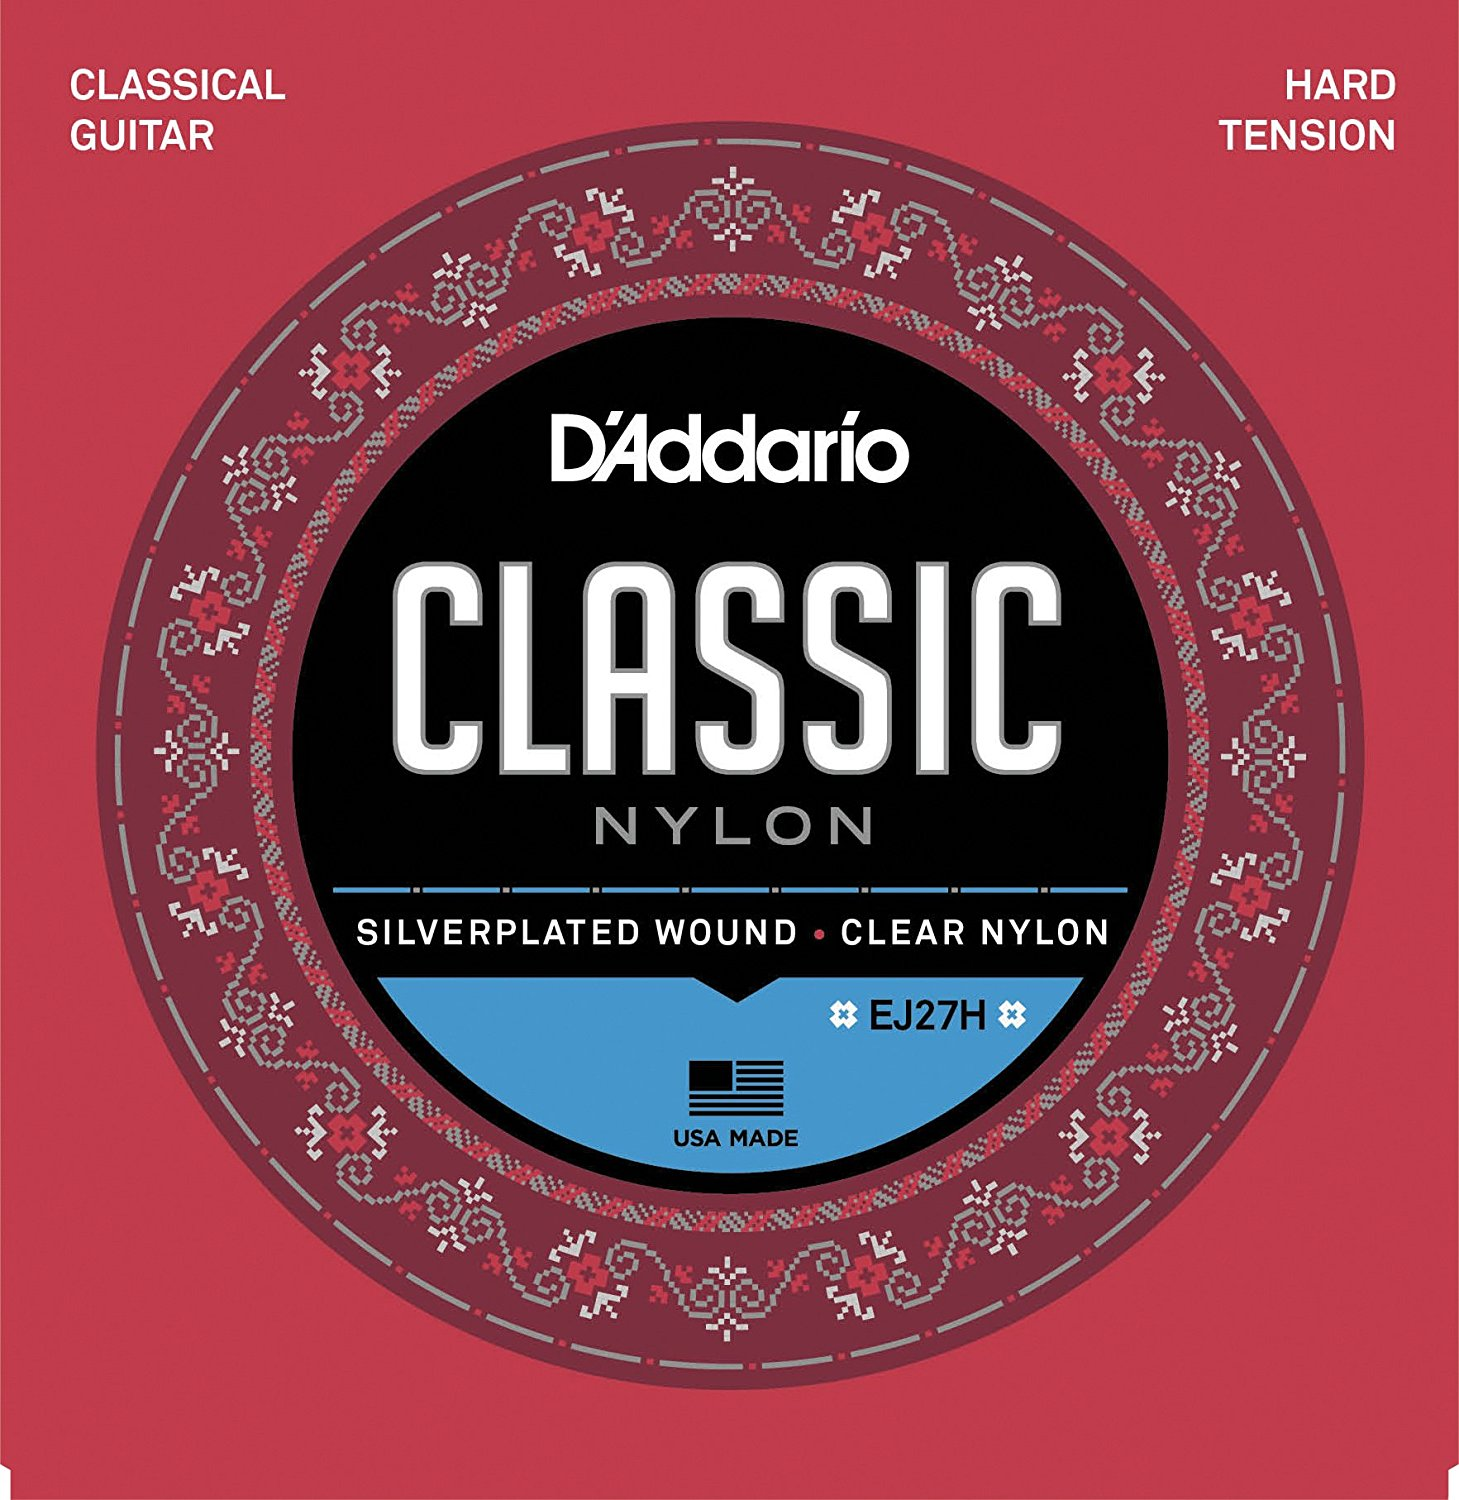 D'Addario EJ27H / EJ27N Student Nylon Classical Guitar Strings, Hard/Normal Tension classical guitar strings set cgn10 classic nylon silver plated normal tension 028 045 classical guitar strings 6strings set